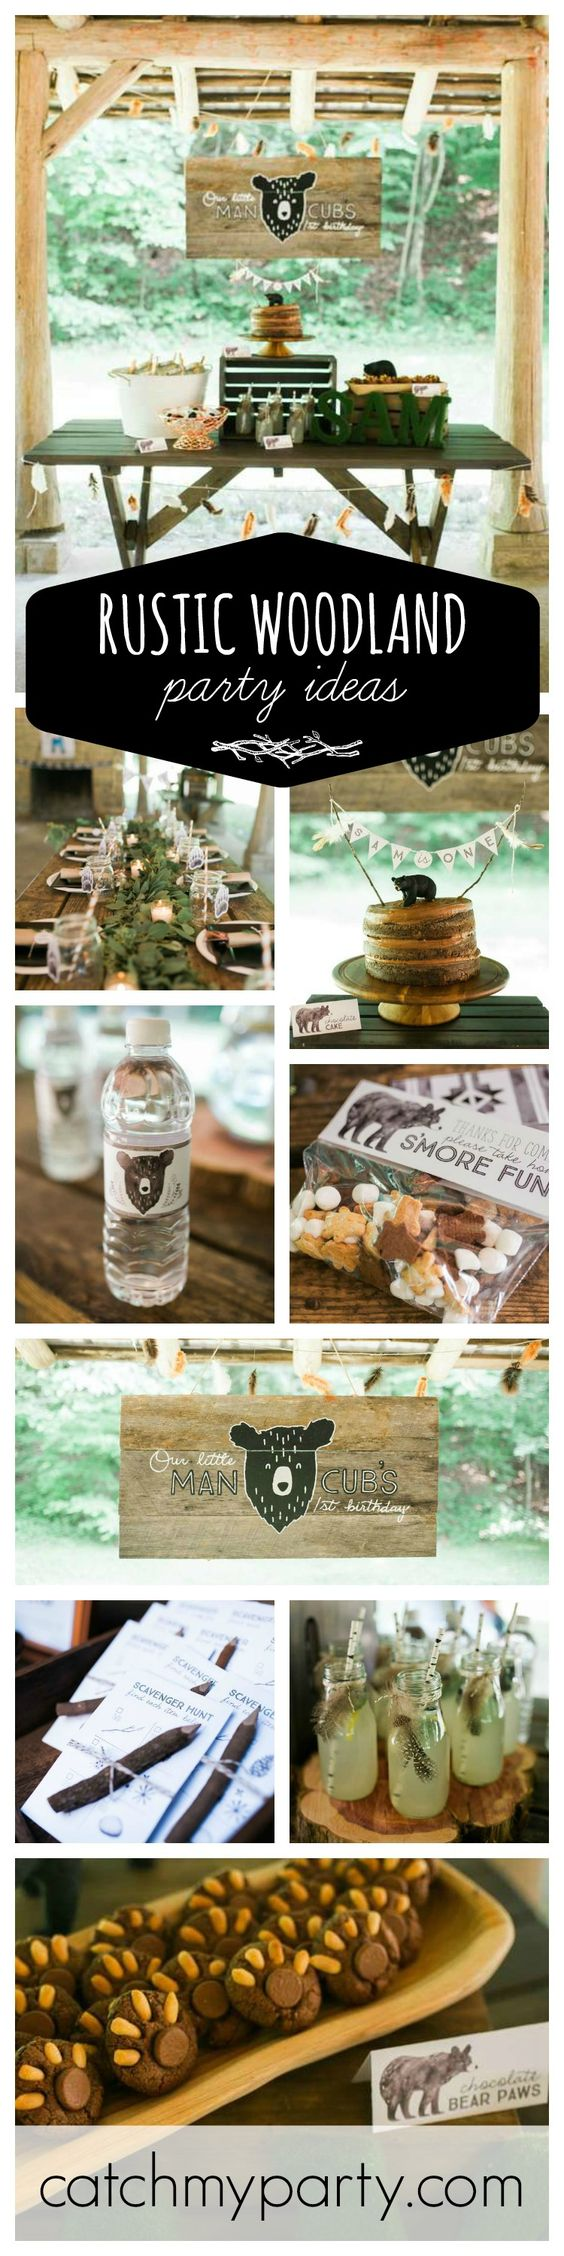 Rustic Woodland baby shower and birthday party ideas - wood cakes and dessert table